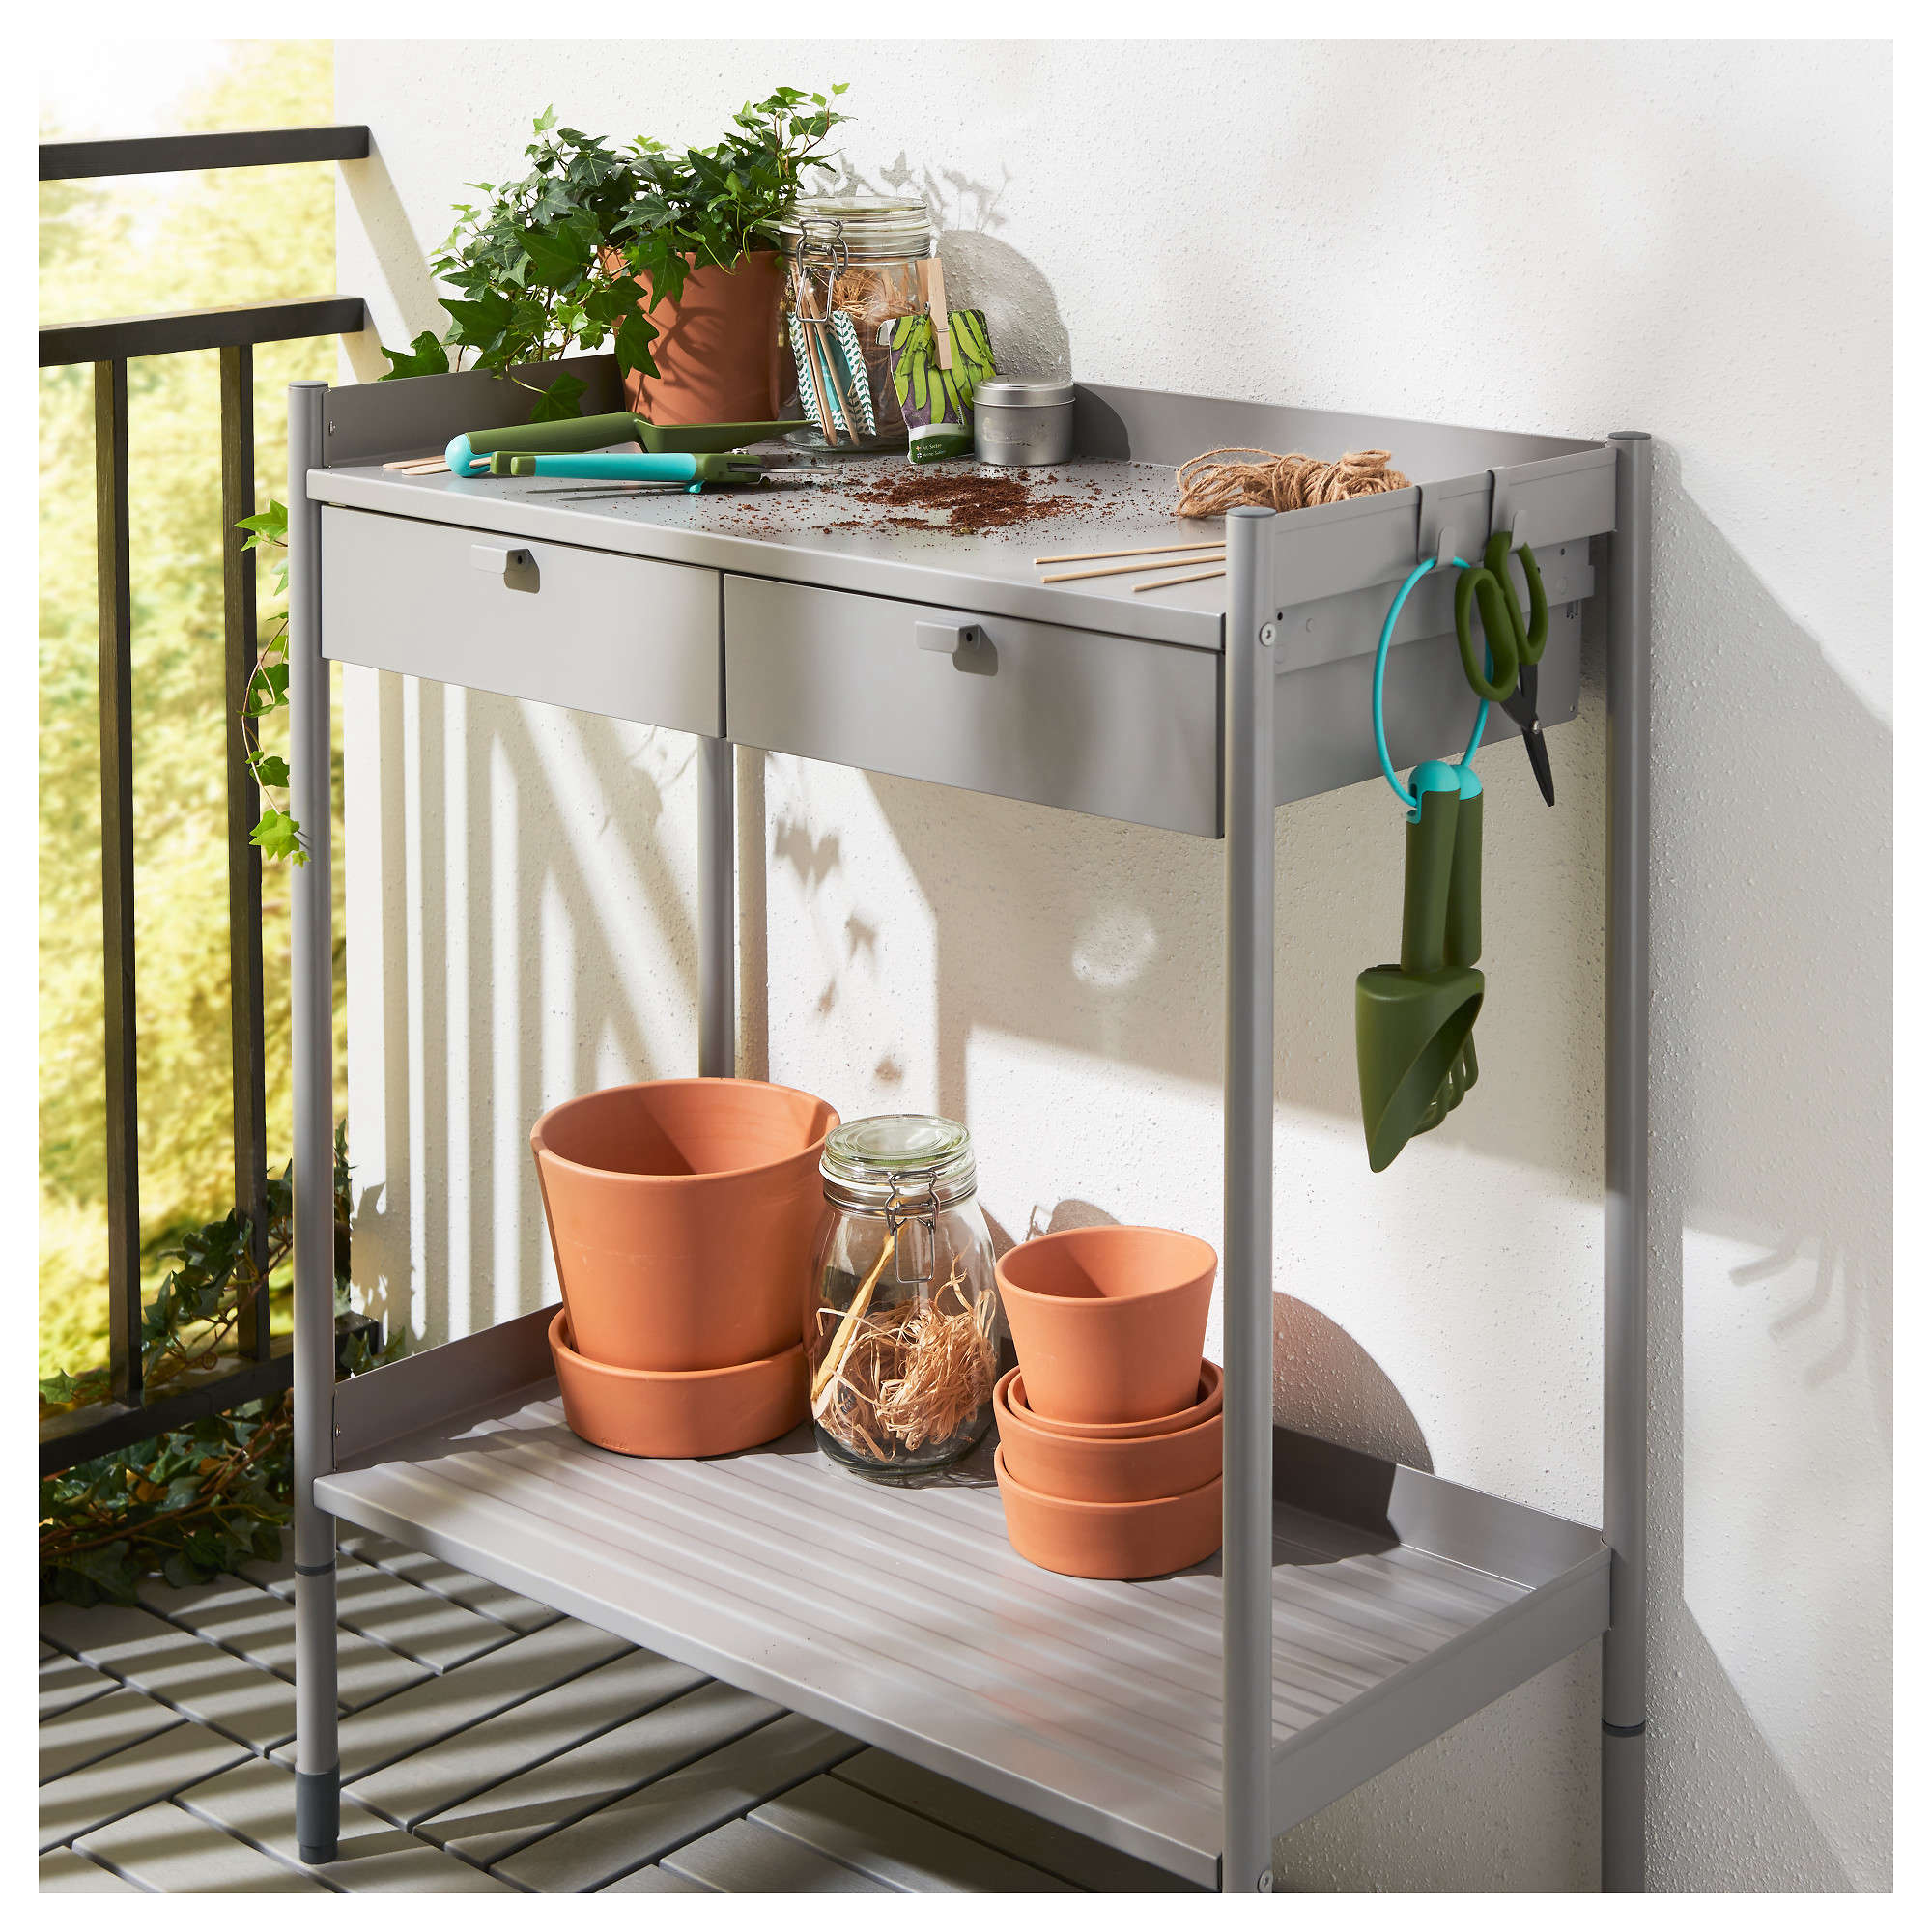 Best of Ikea 5: Potting Shed and Garden Storage - Gardenista